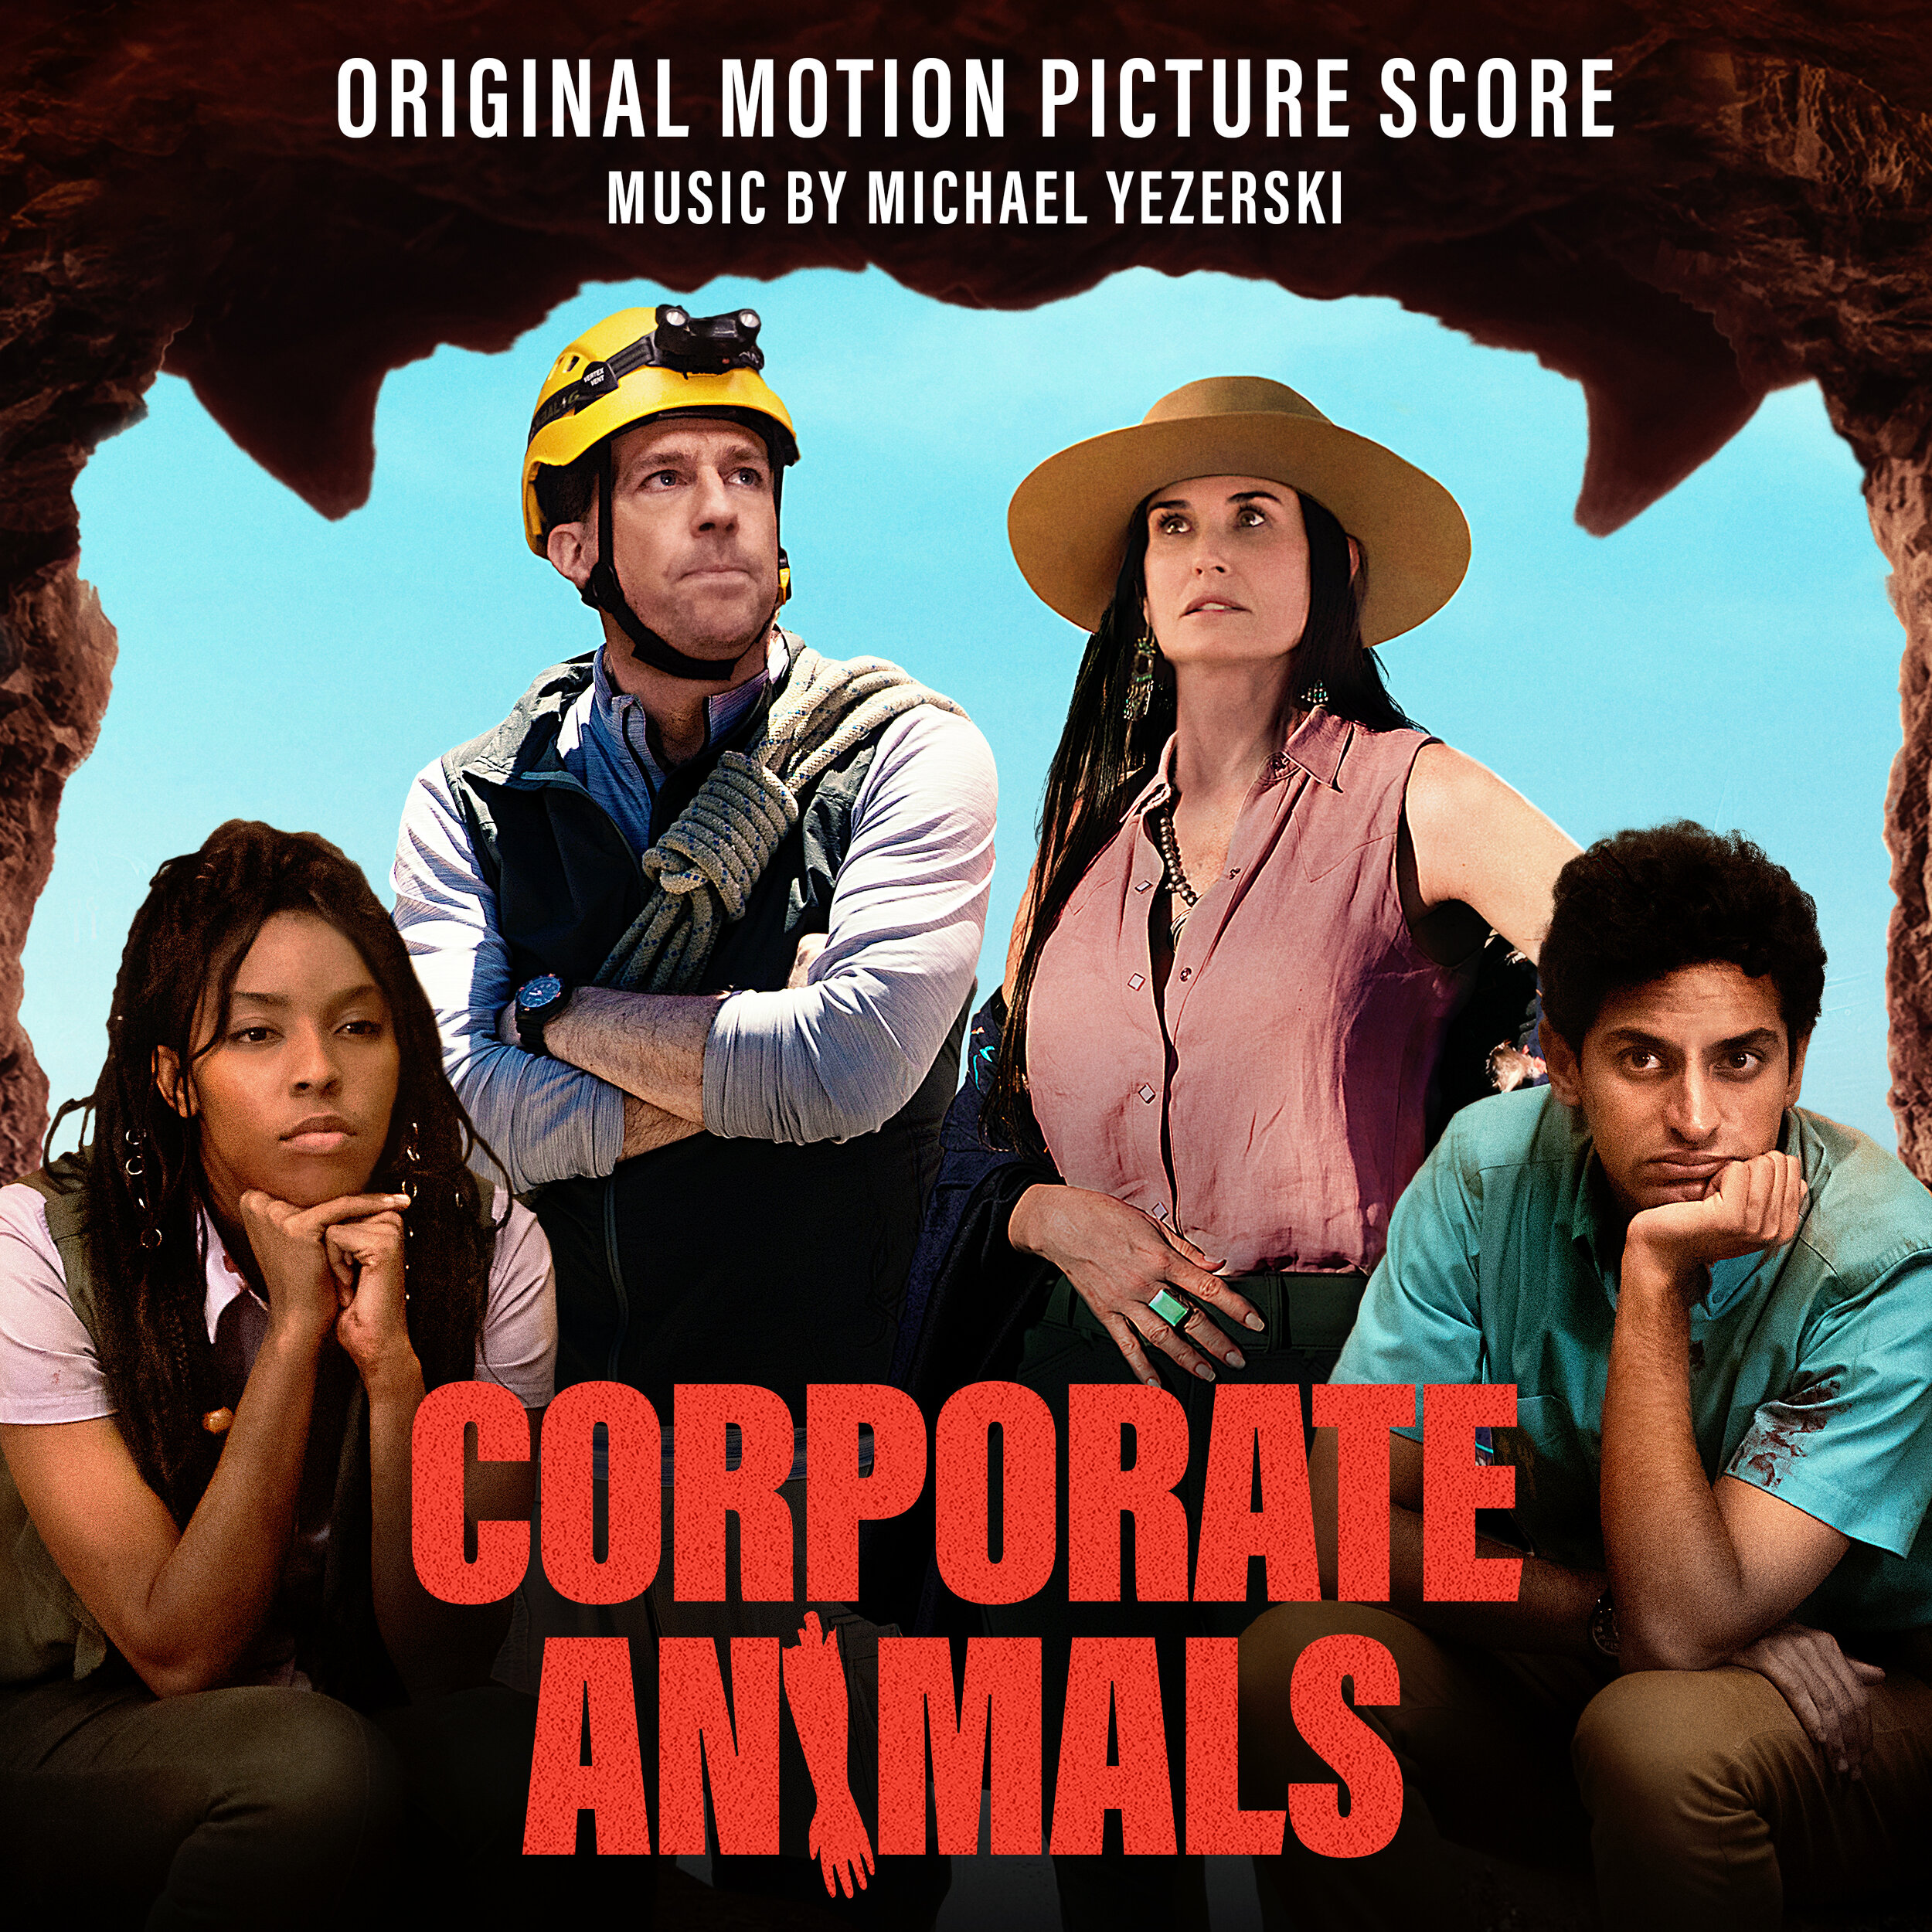 Snoot Music have released Michael Yezerski's score to Corporate Animals. Directed by Patrick Brice and produced by Ed Helms, Mike Falbo, Keith Calder and Jess Calder, the film premiered at Sundance in 2019. Details and links to follow. . .